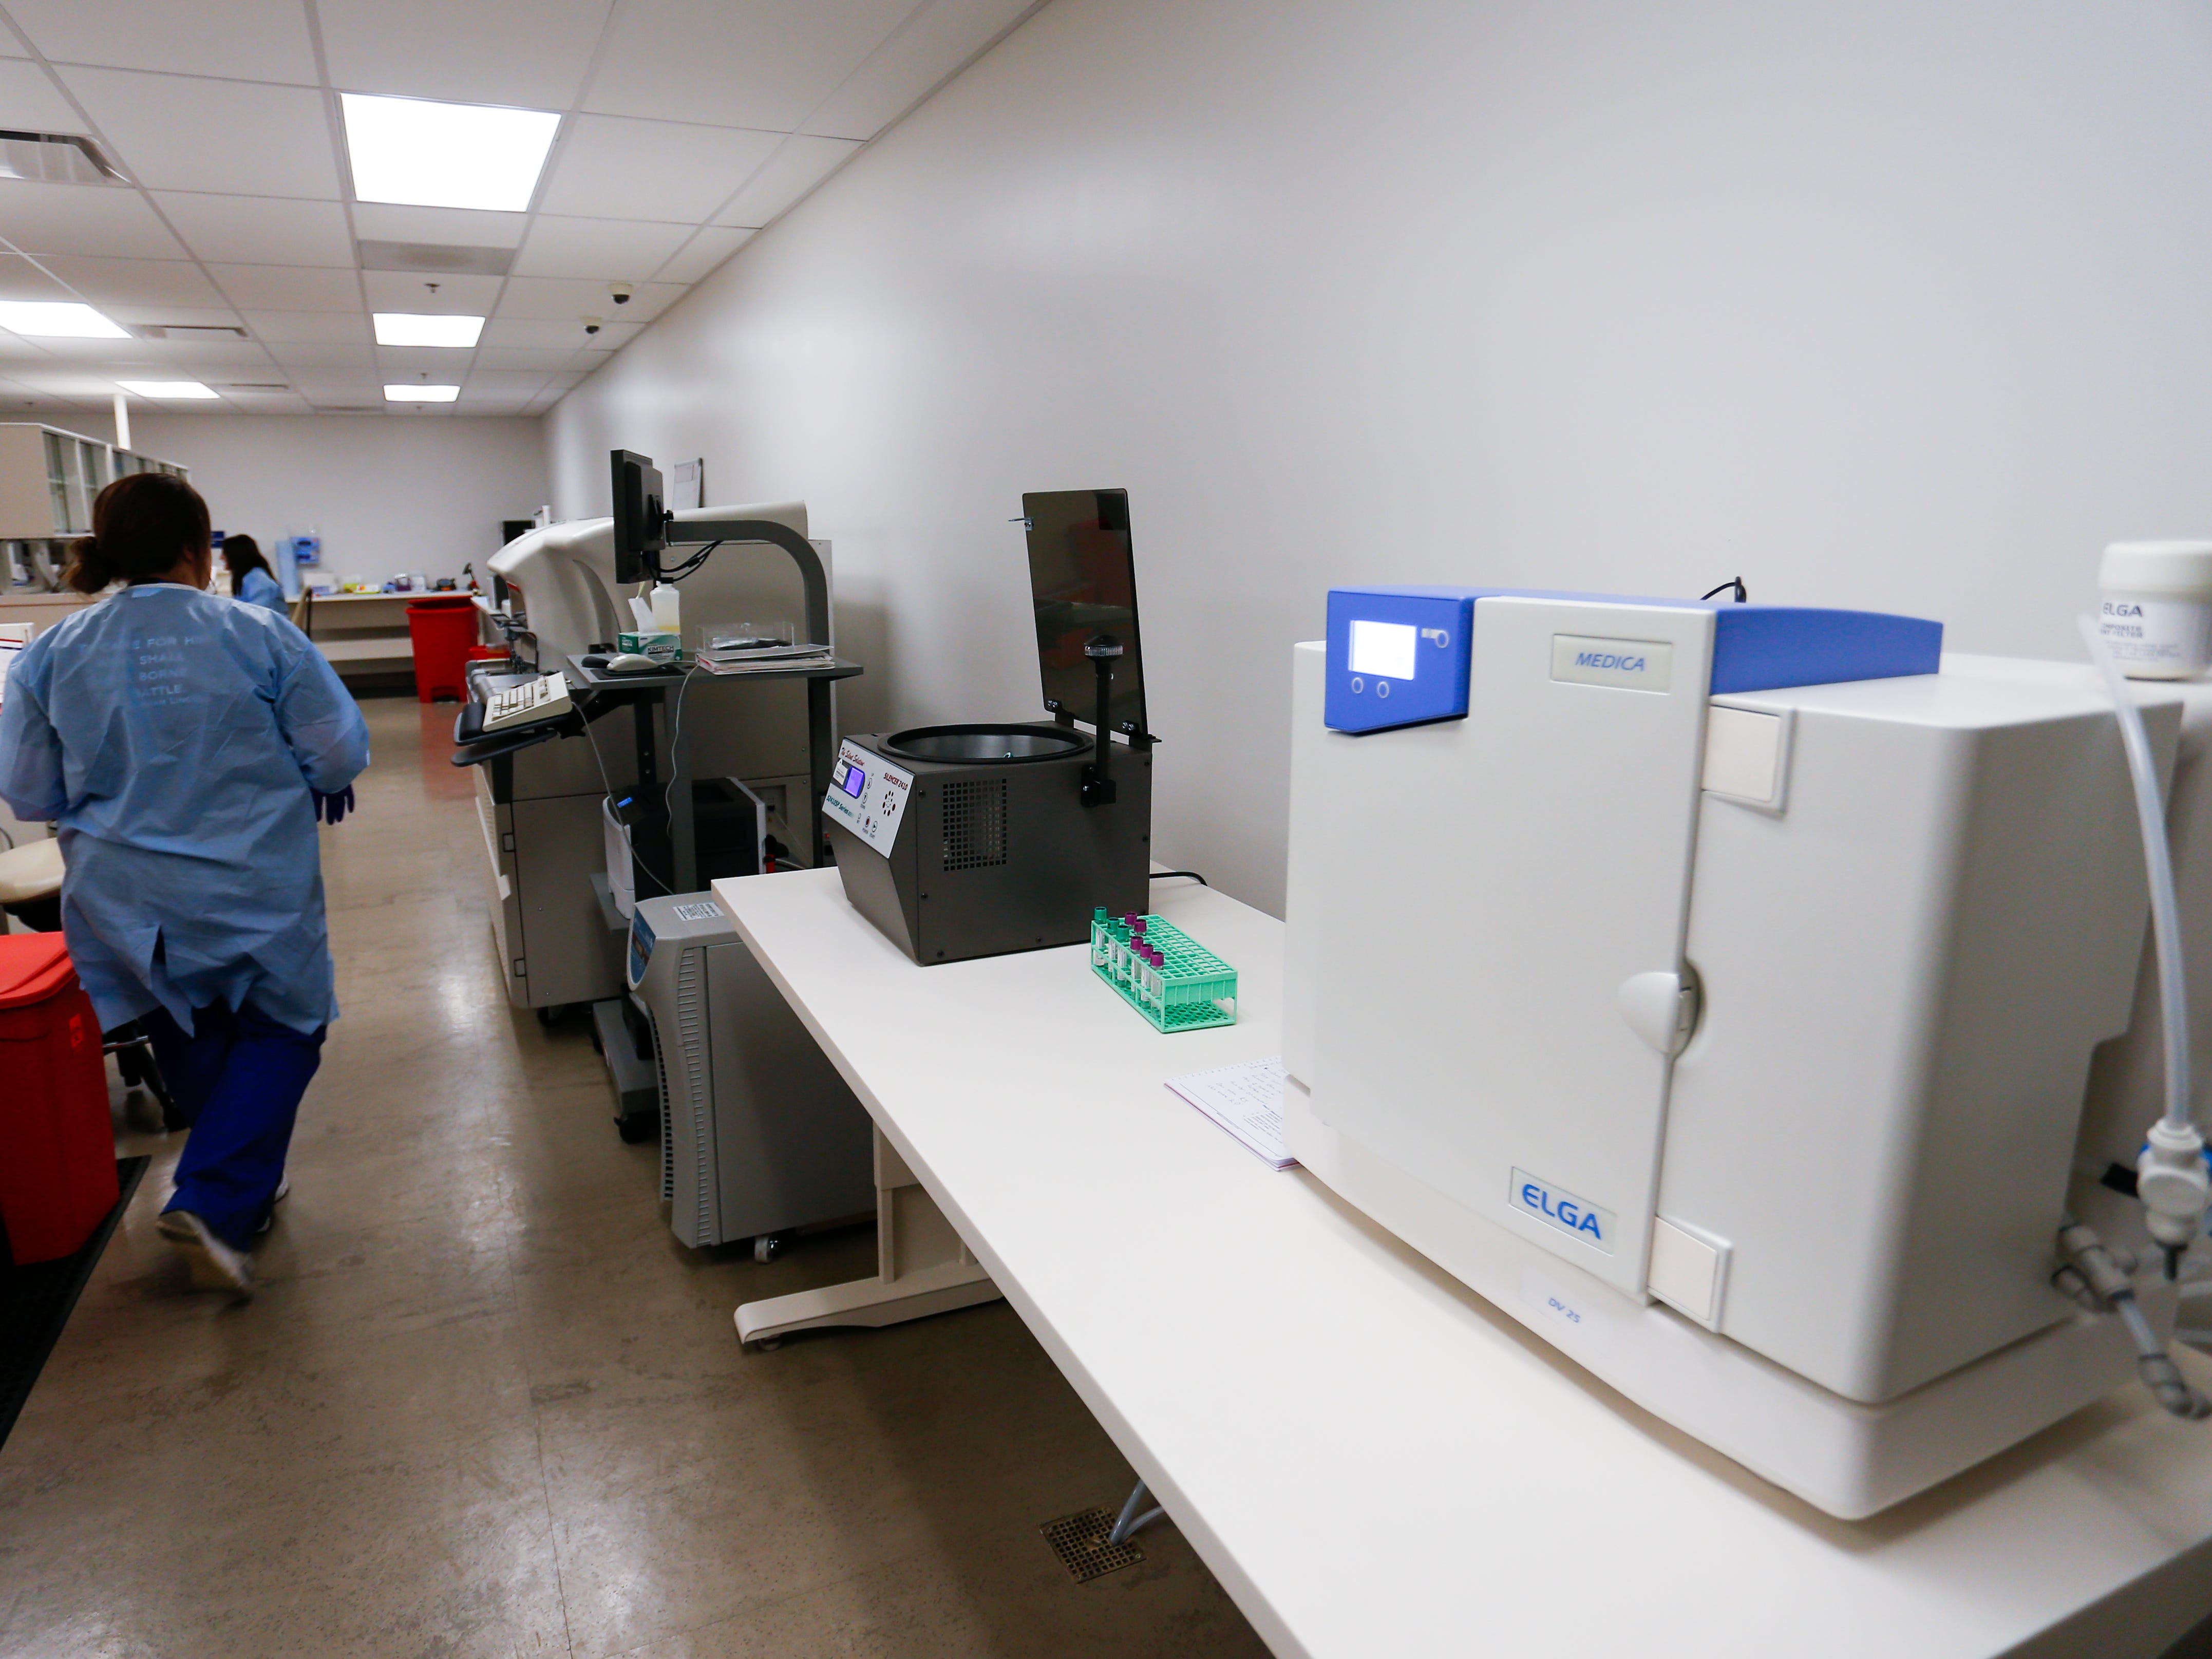 A laboratory inside the Department of Veterans Affairs Gene Taylor Community Based Outpatient Clinic in south Springfield on Thursday, Jan. 11, 2019.